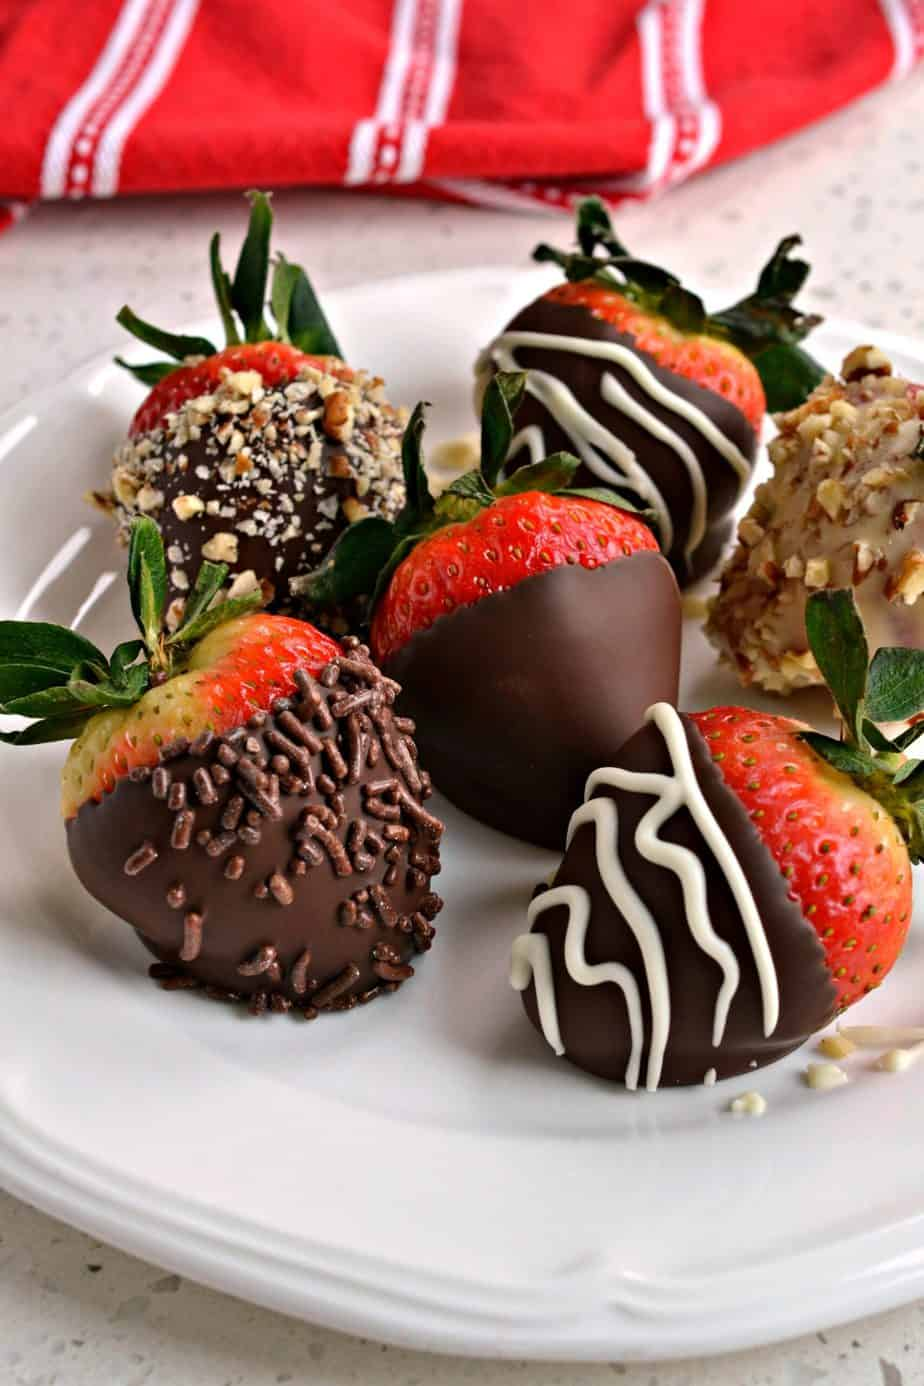 With just a few helpful hints anyone can make this easy Chocolate Covered Strawberry recipe.